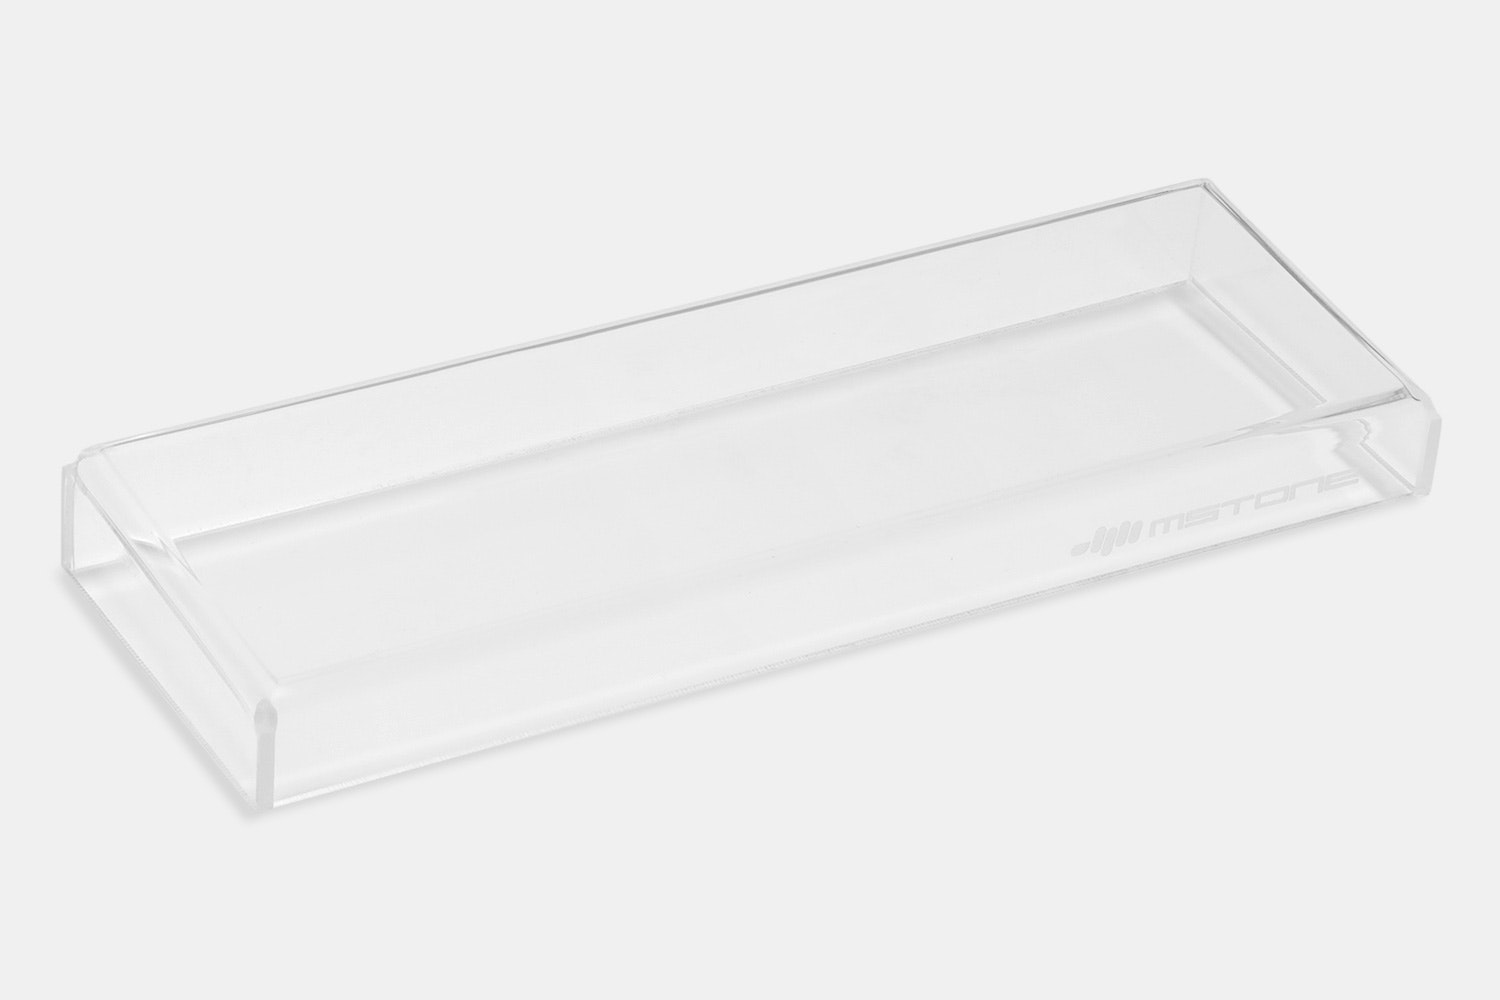 mStone Acrylic Keyboard Dust Cover for 40% Keyboards